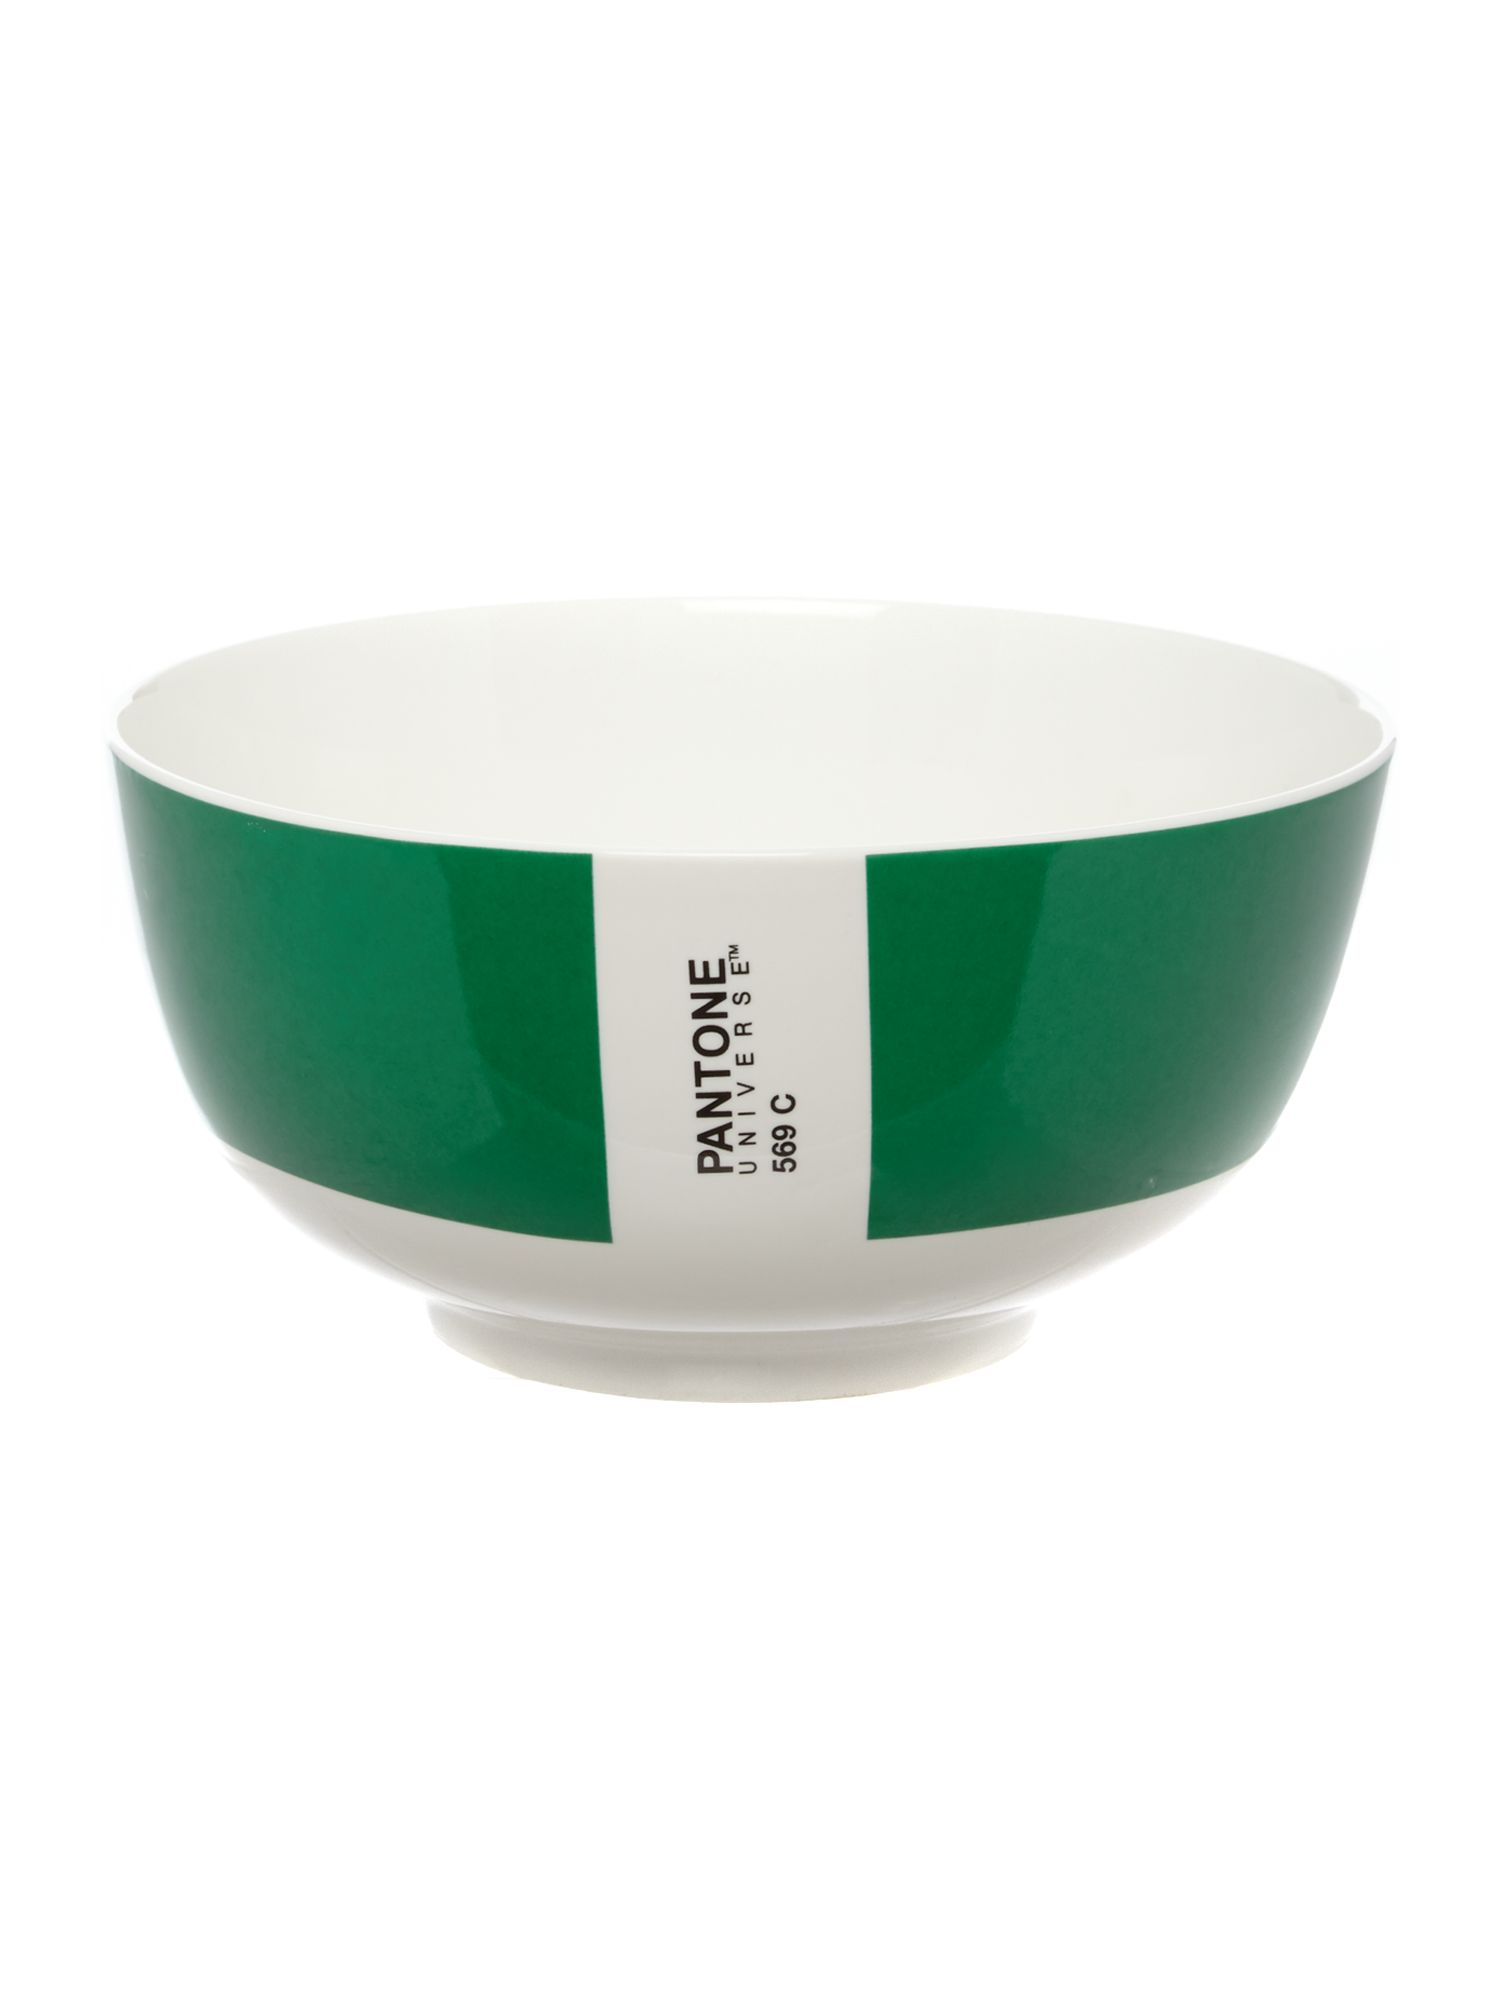 Image of Pantone Bowl luca trazzi green